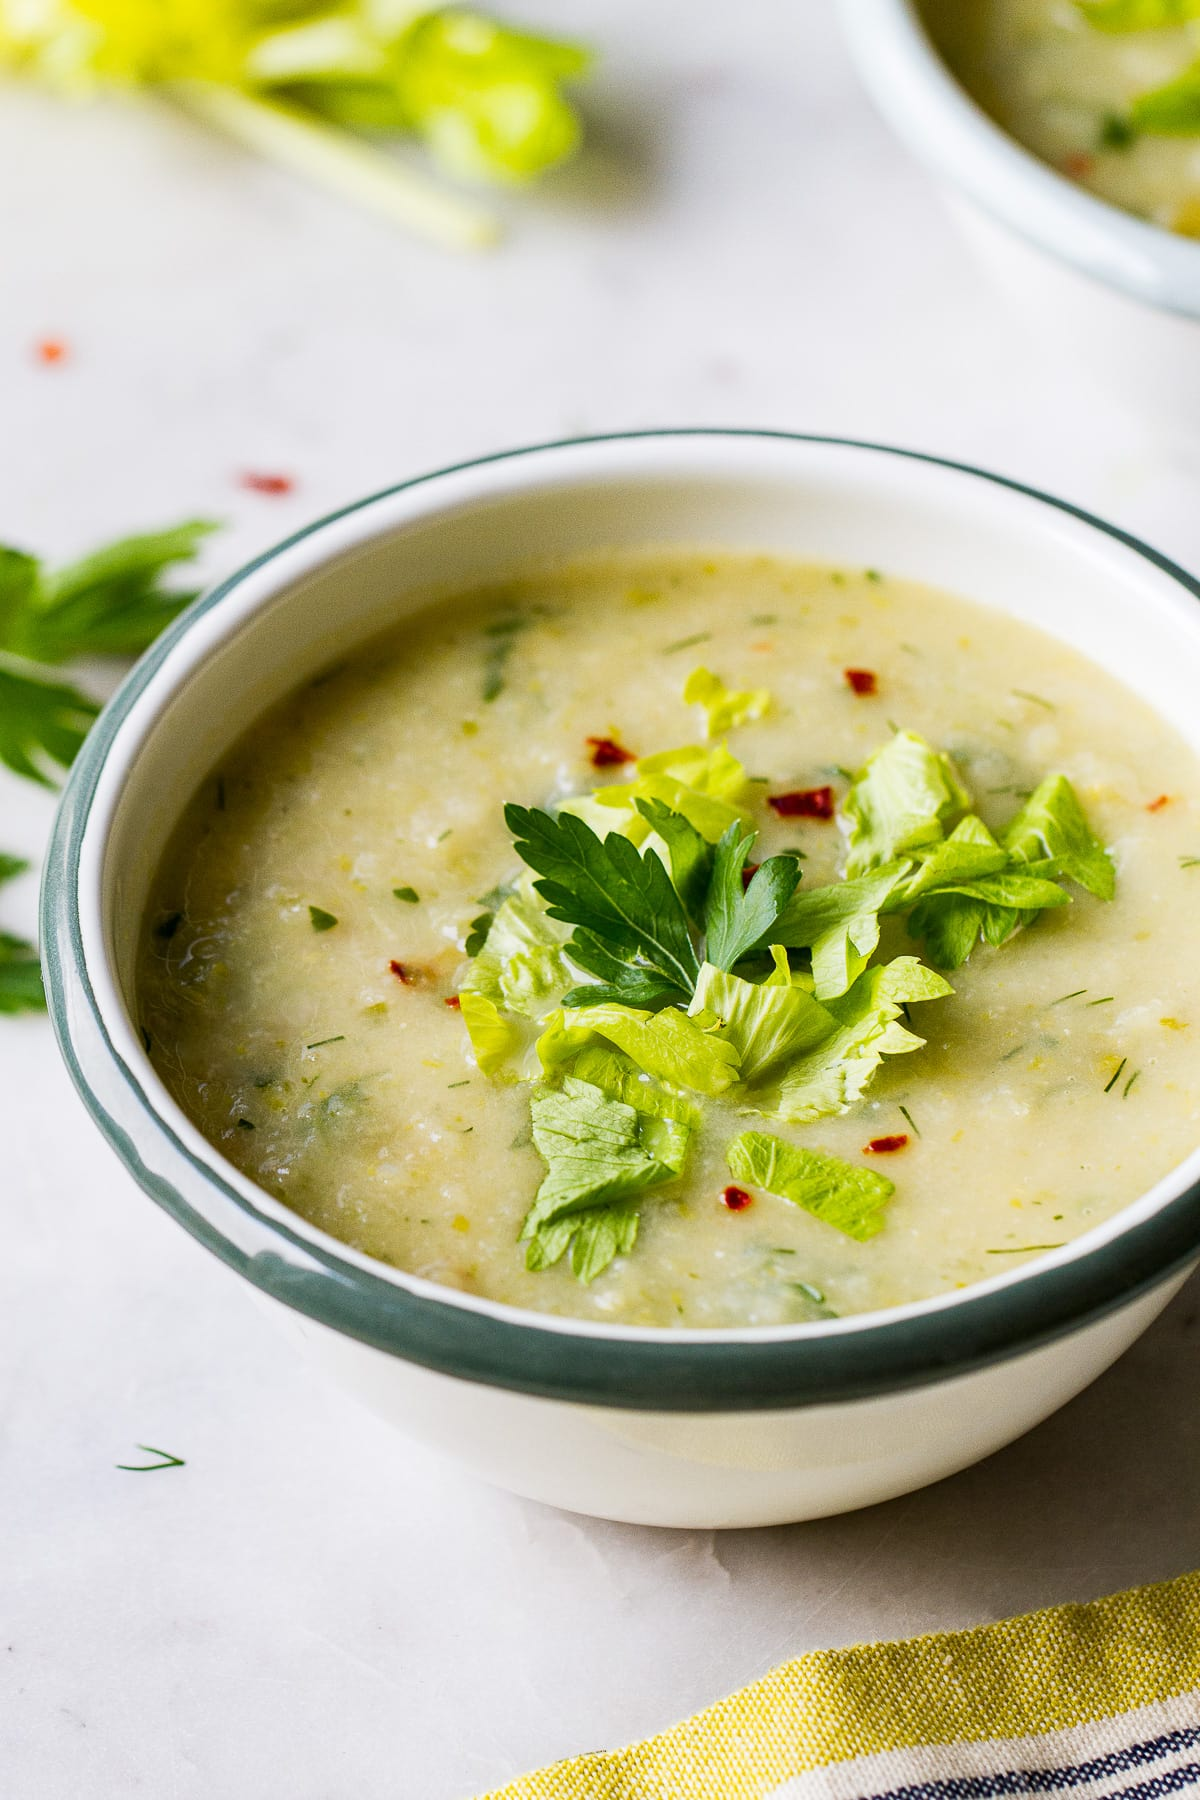 side angle view of a bowl with a serving of healthy celery soup.